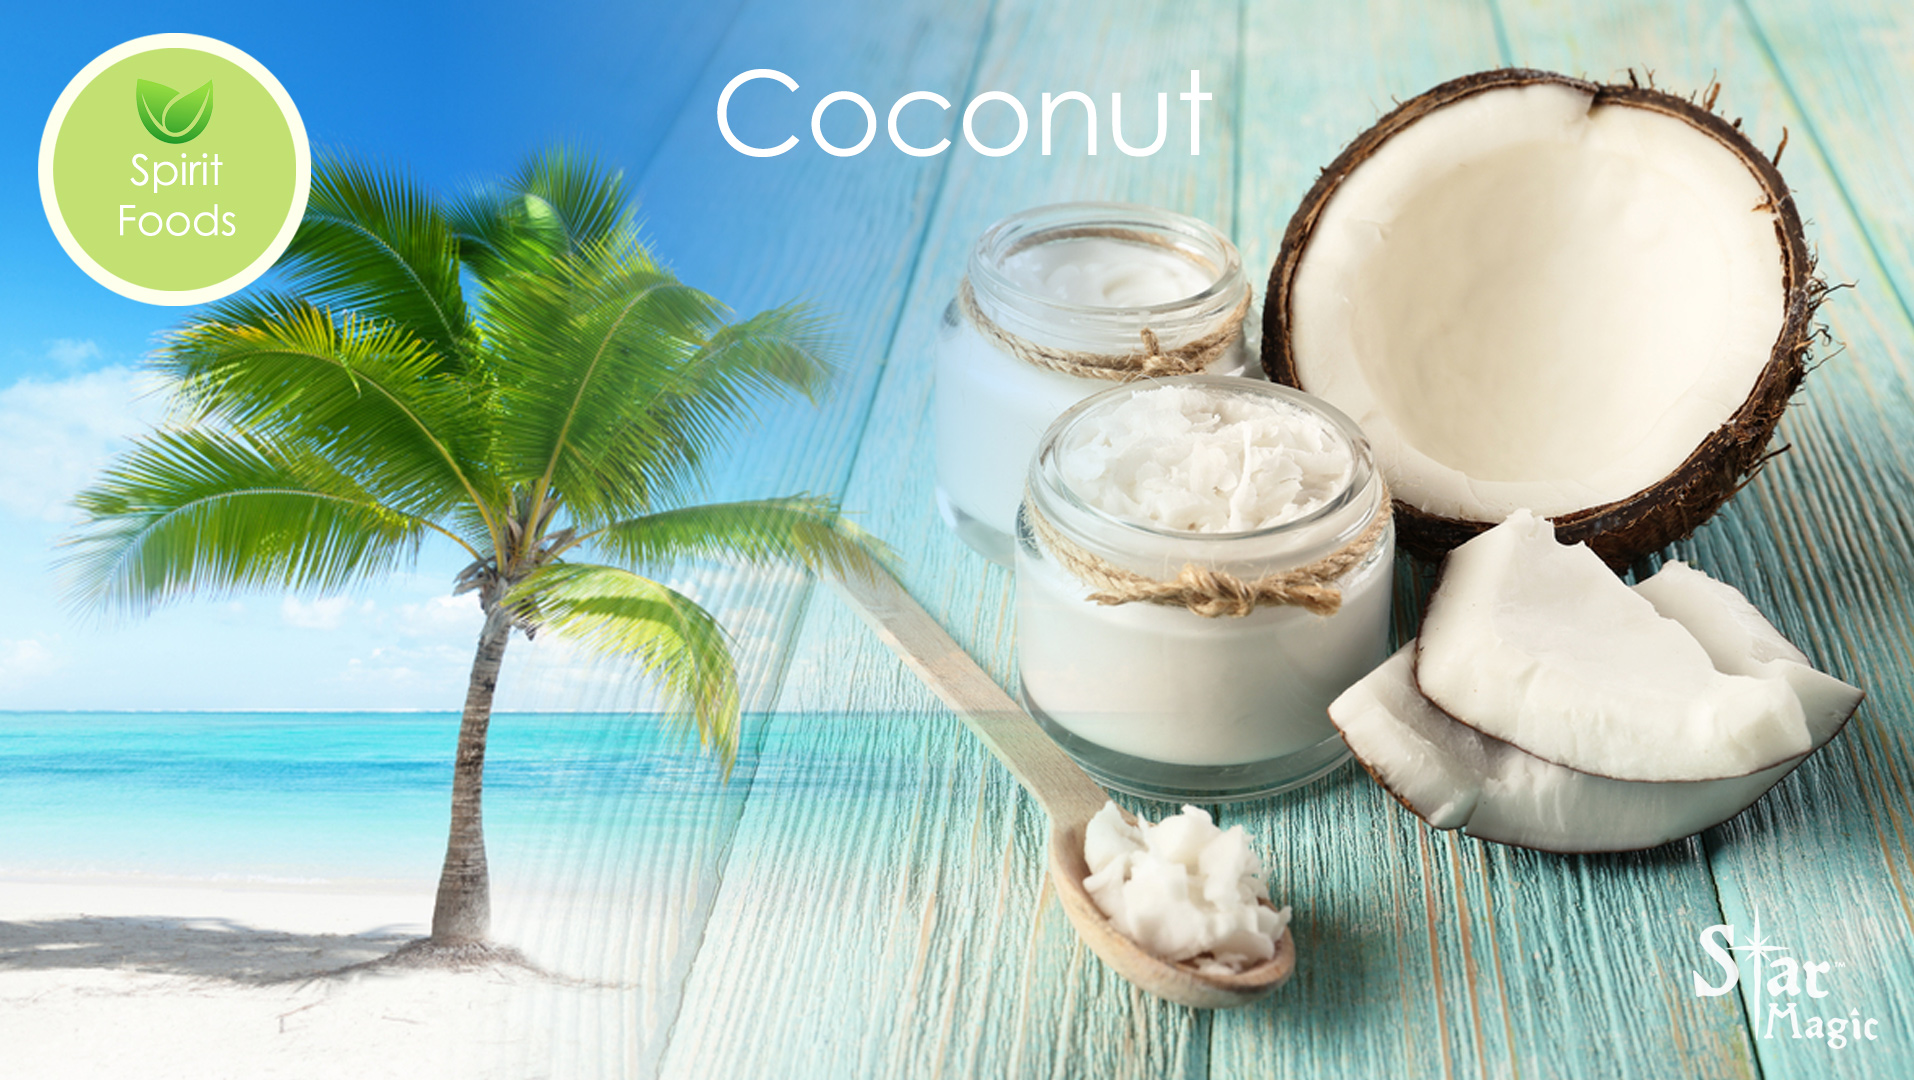 Spirit Food – Coconut